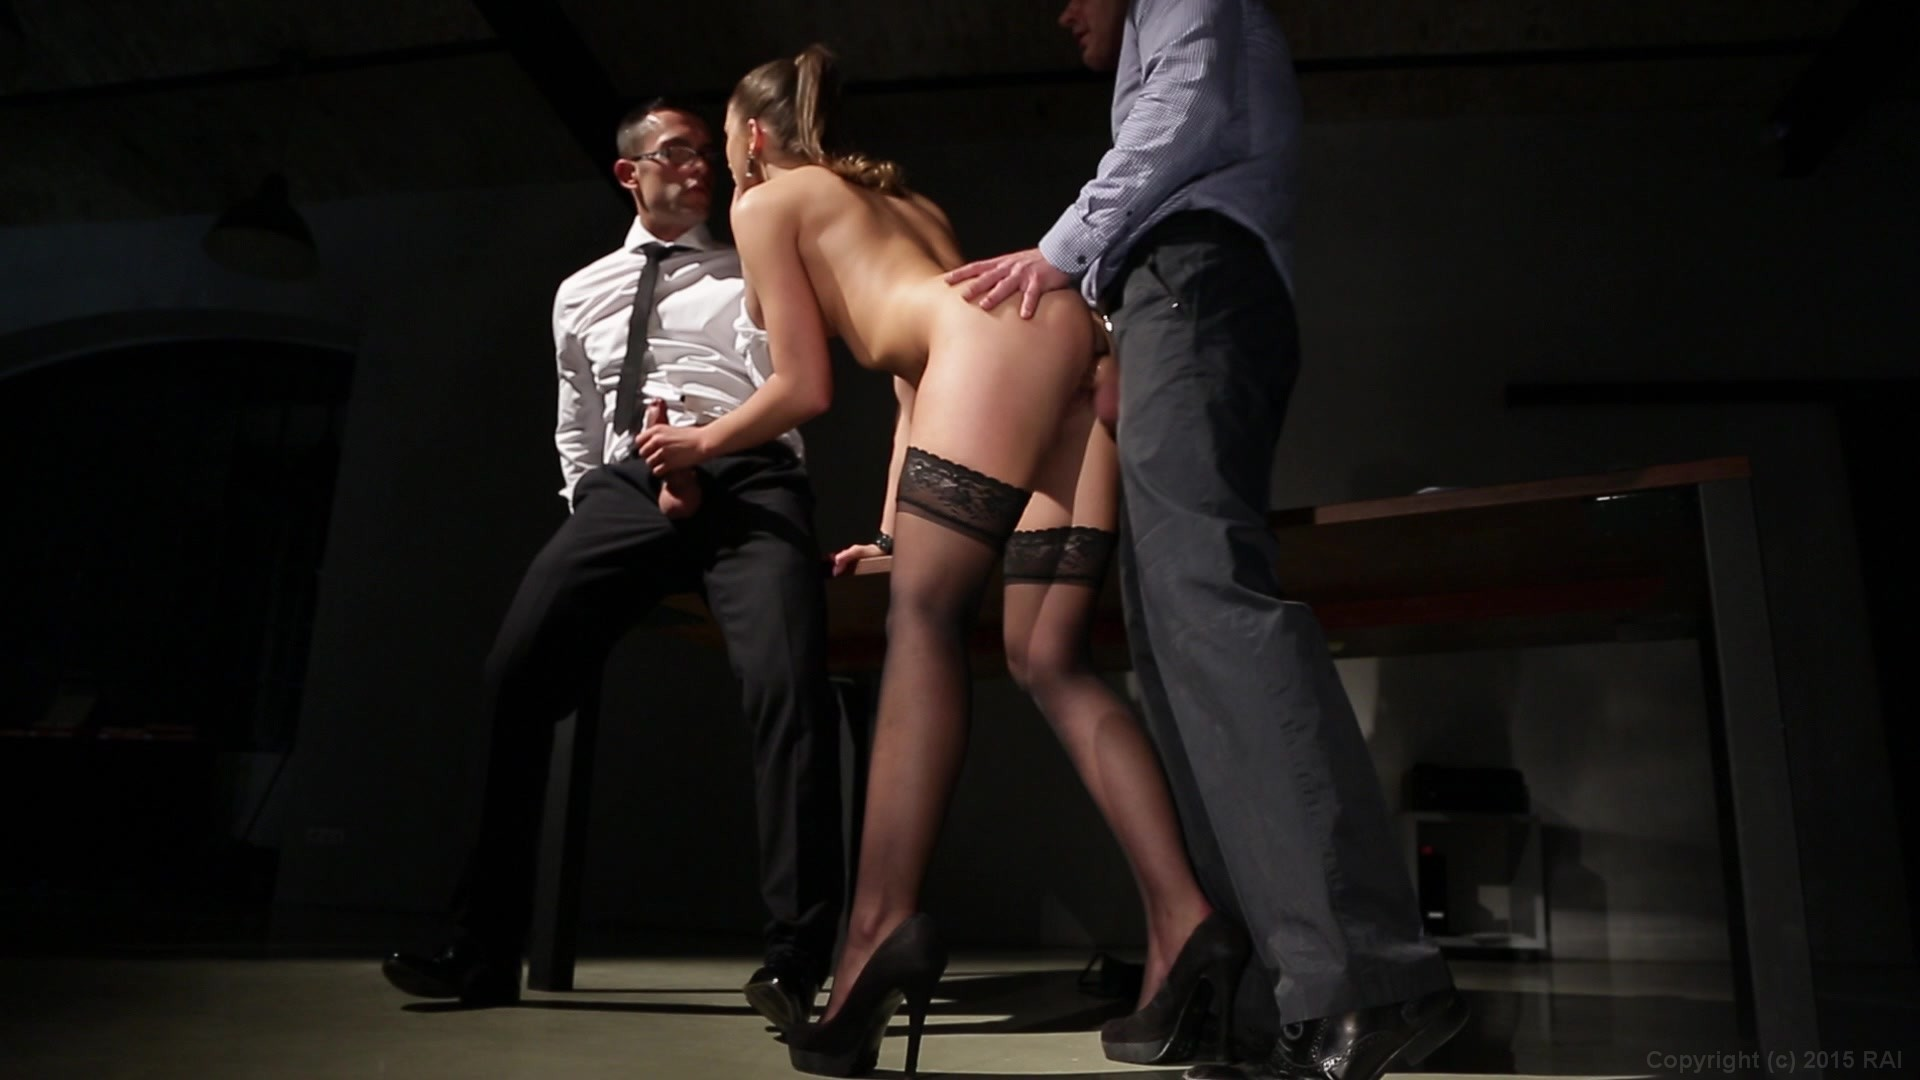 Irresistible Brunette Sucks and Fucks Two Businessmen in the Office in Hot  Threesome from Manon, Rookie Secretary | Marc Dorcel (English) | Adult  Empire ...